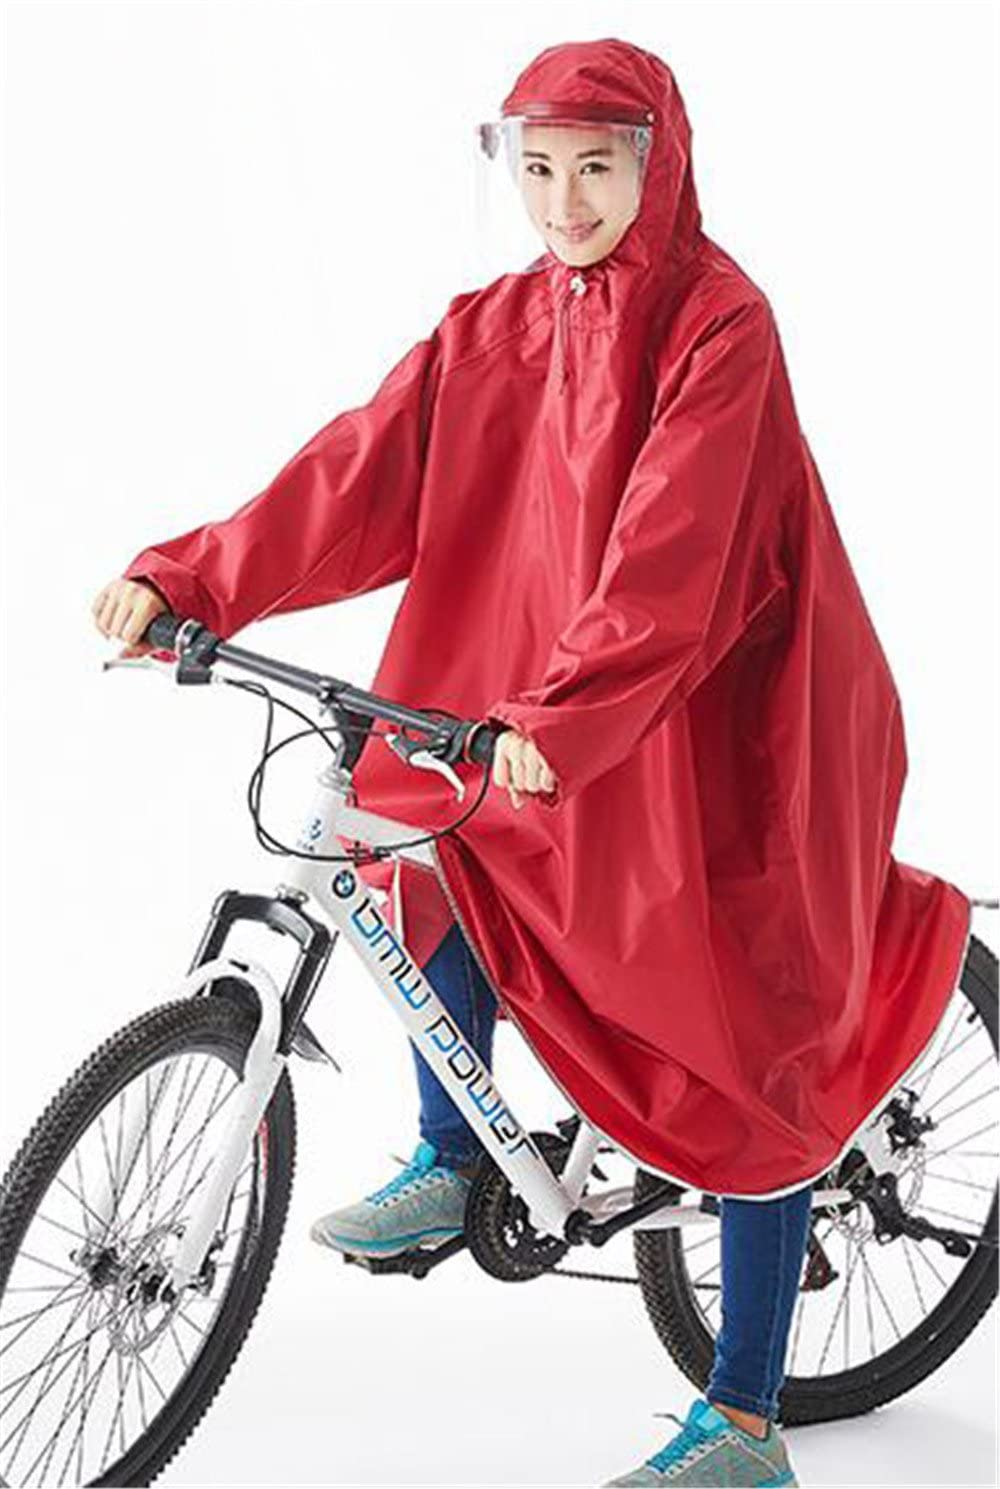 Biscount Helmet & Sleeves Rain Poncho Bike Waterproof Cycle Rain Cape For Outdoor Sports Camping,Hiking,Fishing,Cycling - Full Face Cover Red